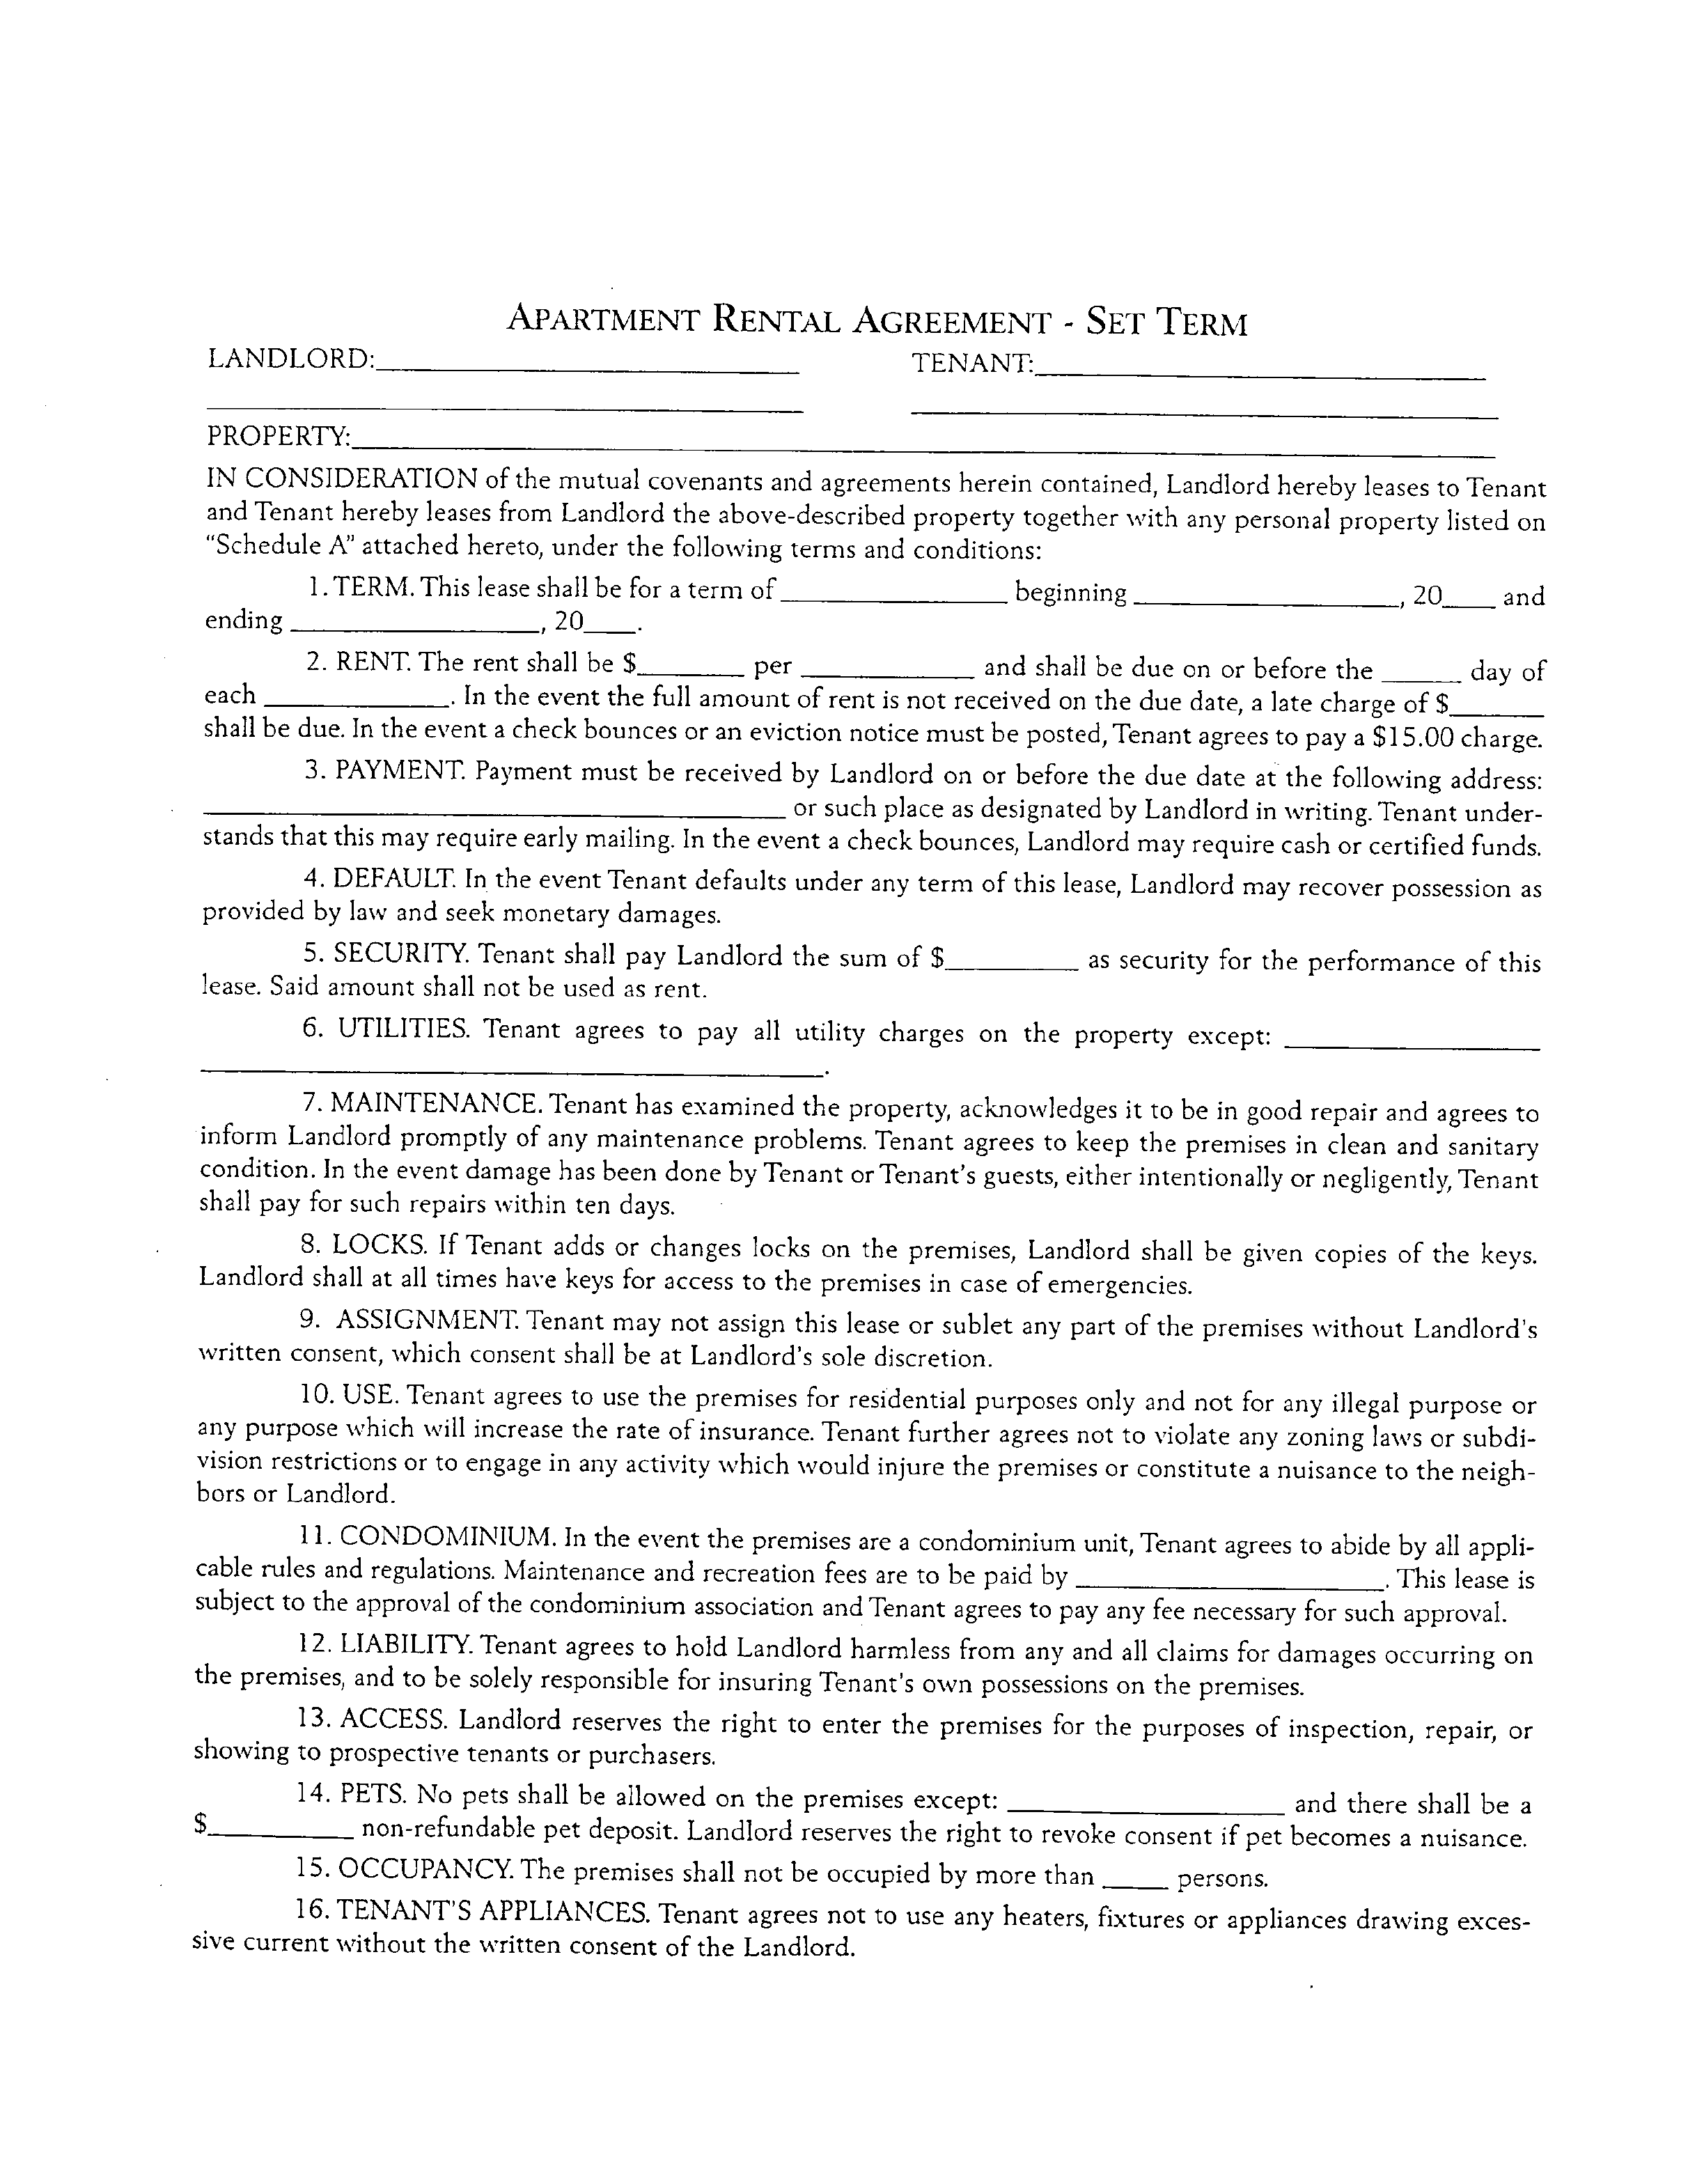 Free Apartment Lease Agreement Template TheApartment – Apartment Rental Agreement